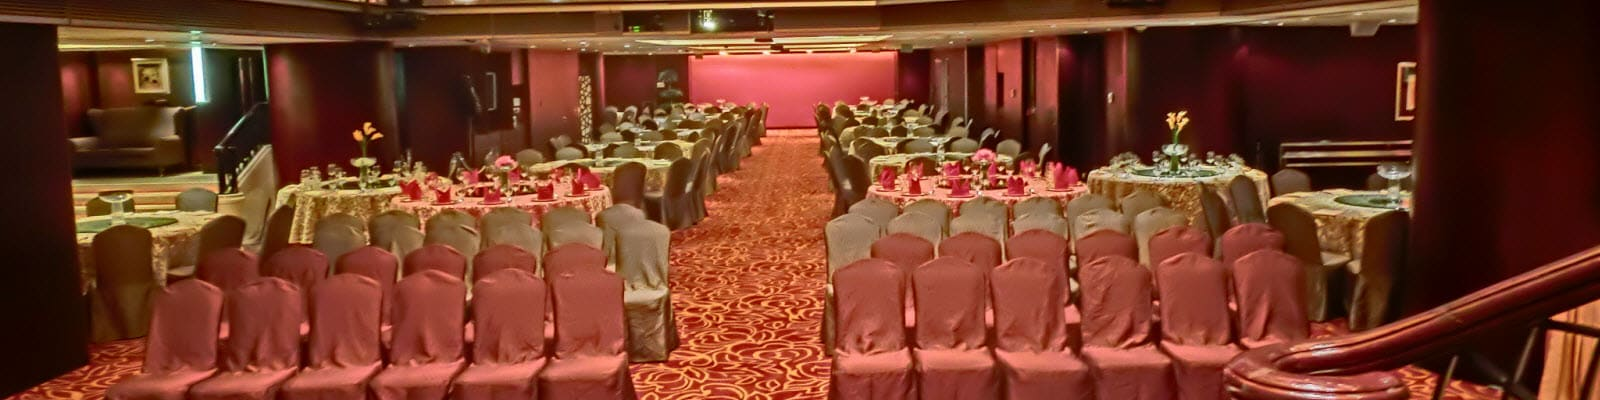 Banquet Chairs and Event Seating